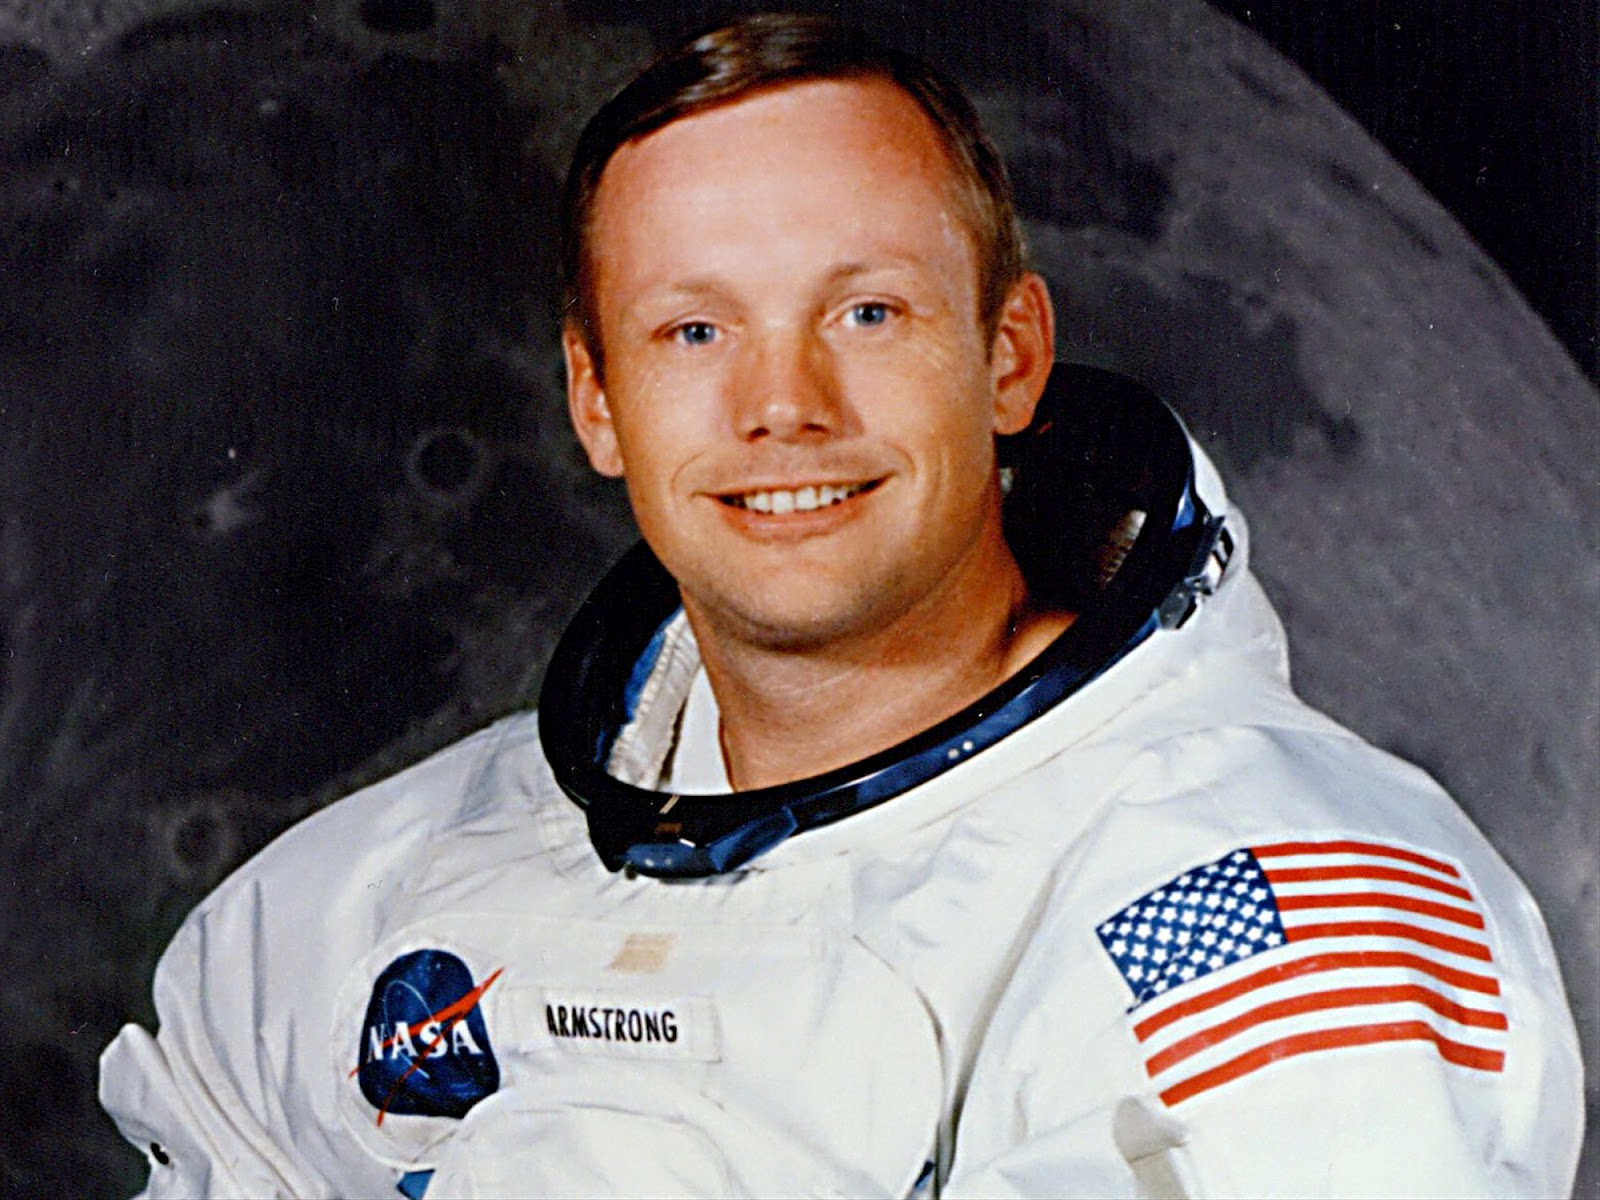 neil armstrong - photo #21